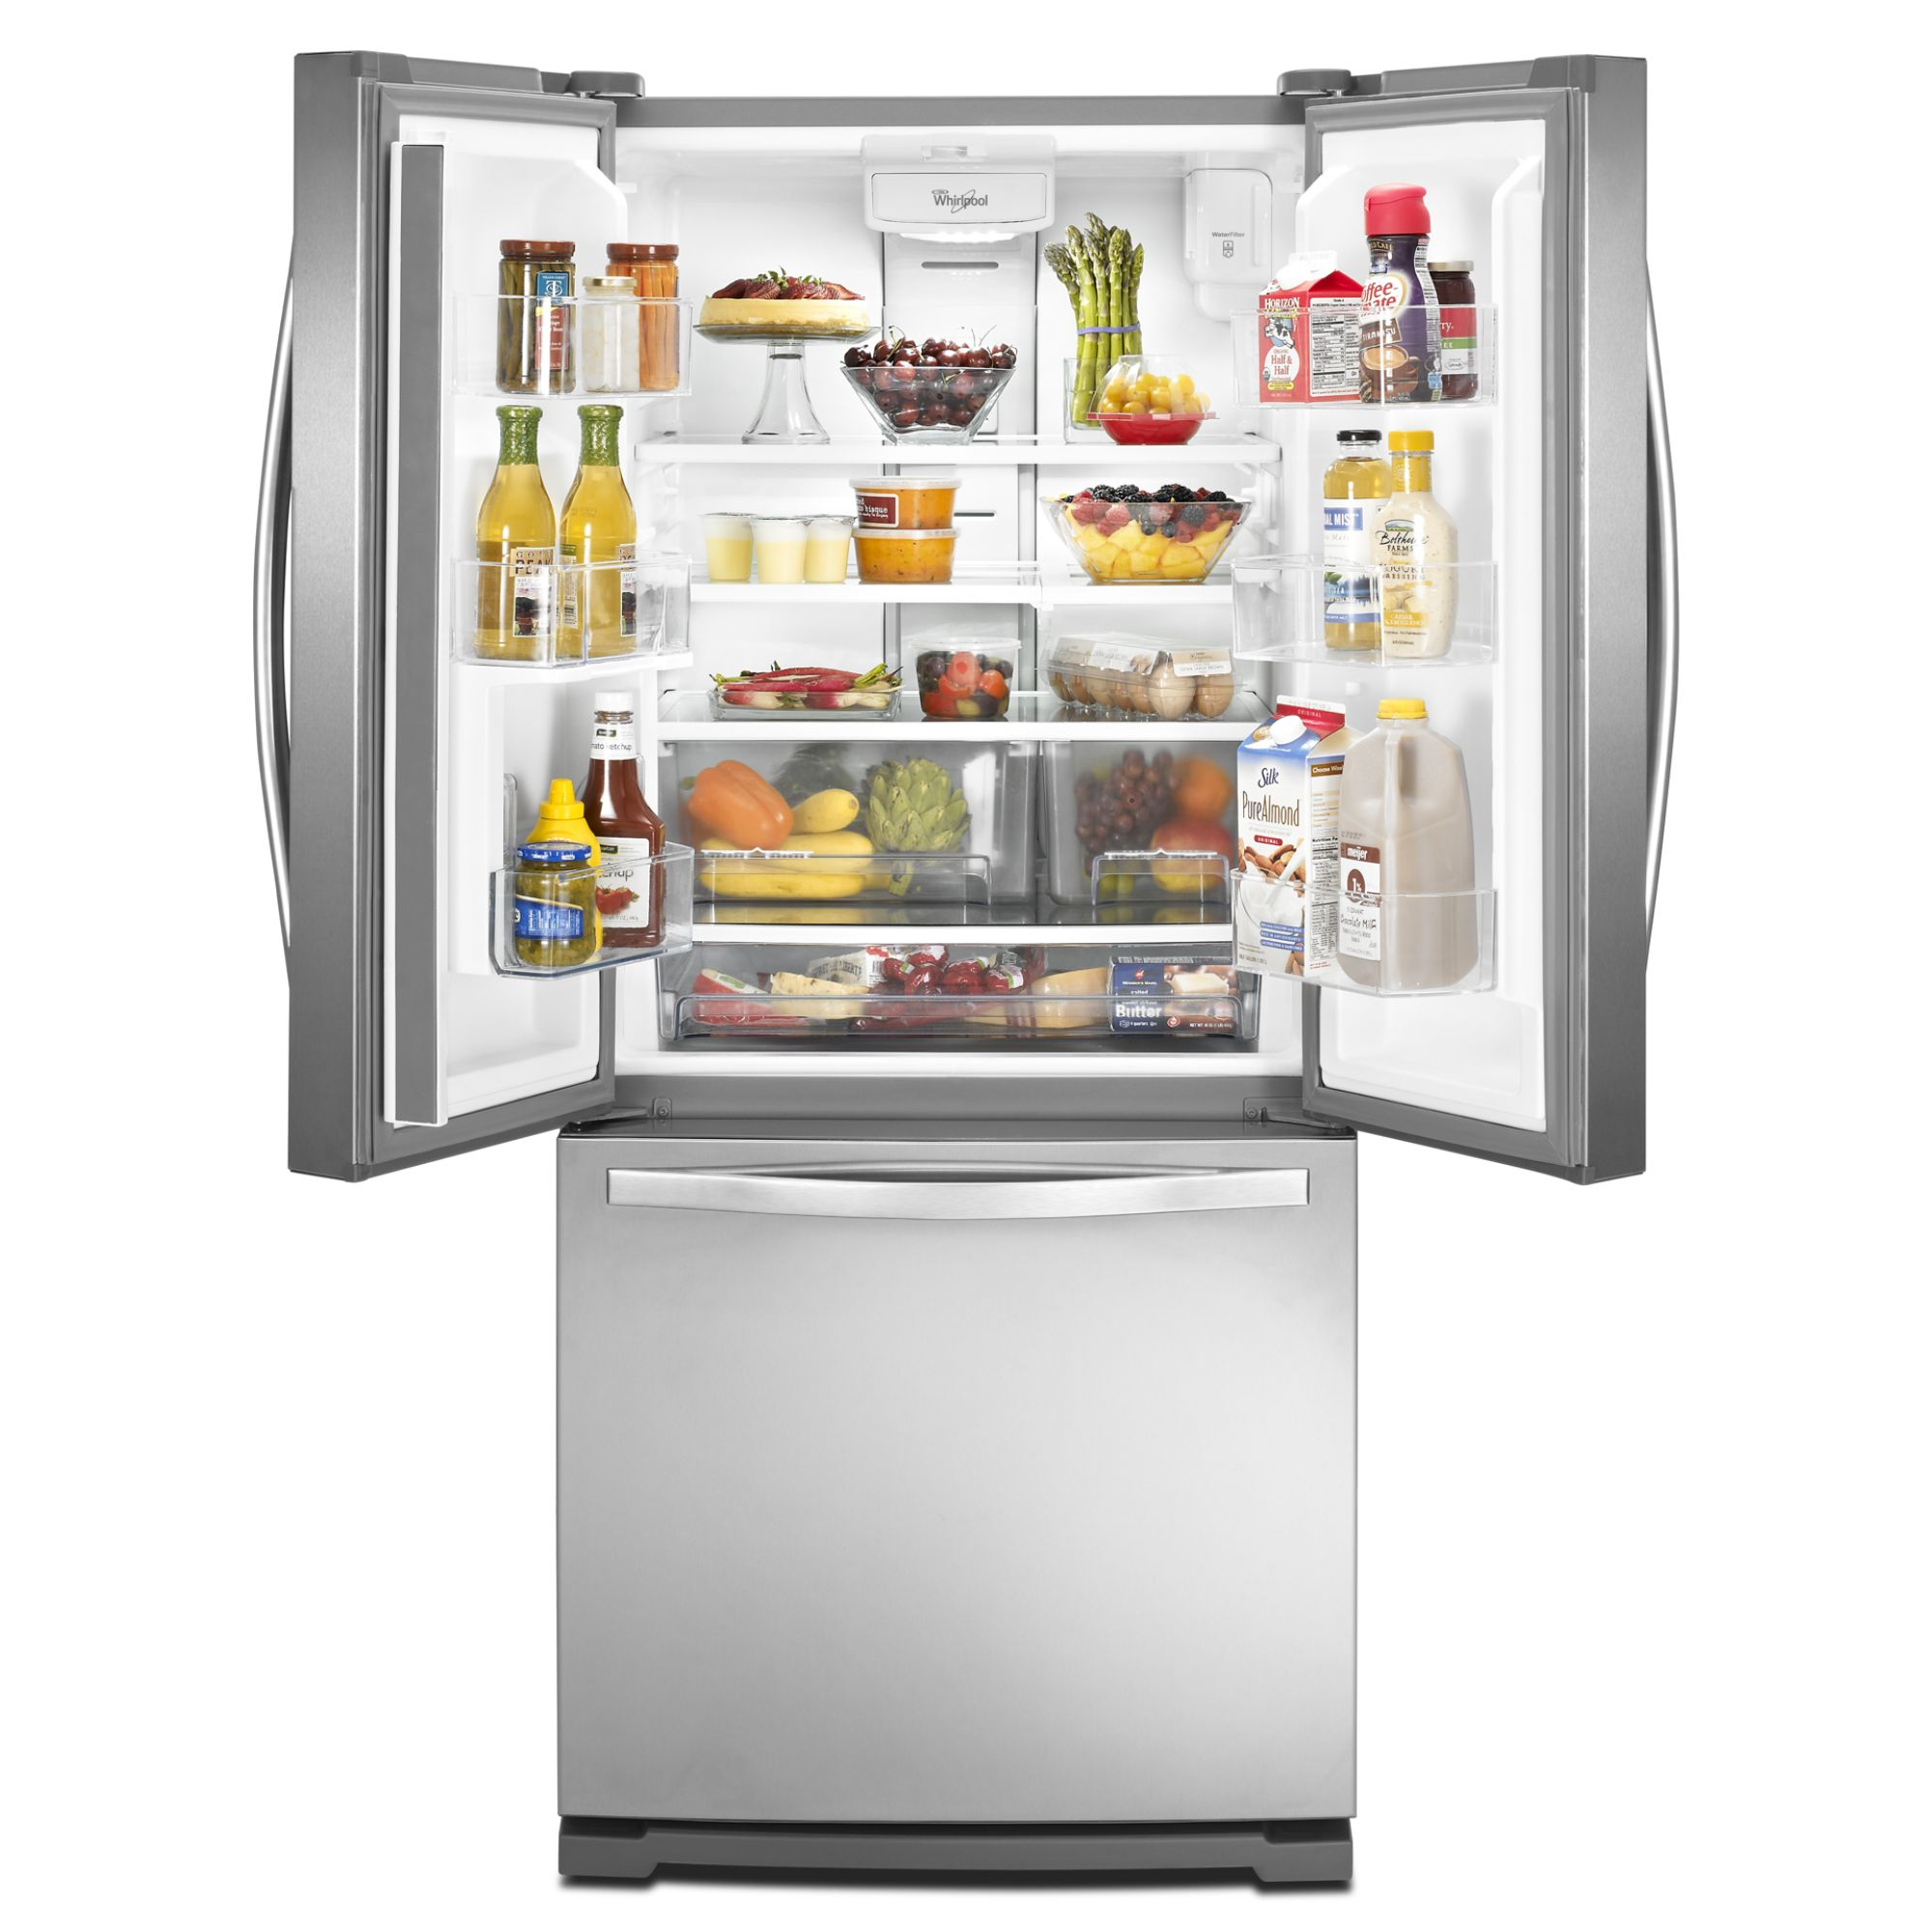 Whirlpool WRF560SEYM 19.7 cu. ft. French Door Refrigerator w/ Exterior Dispenser - Stainless Steel